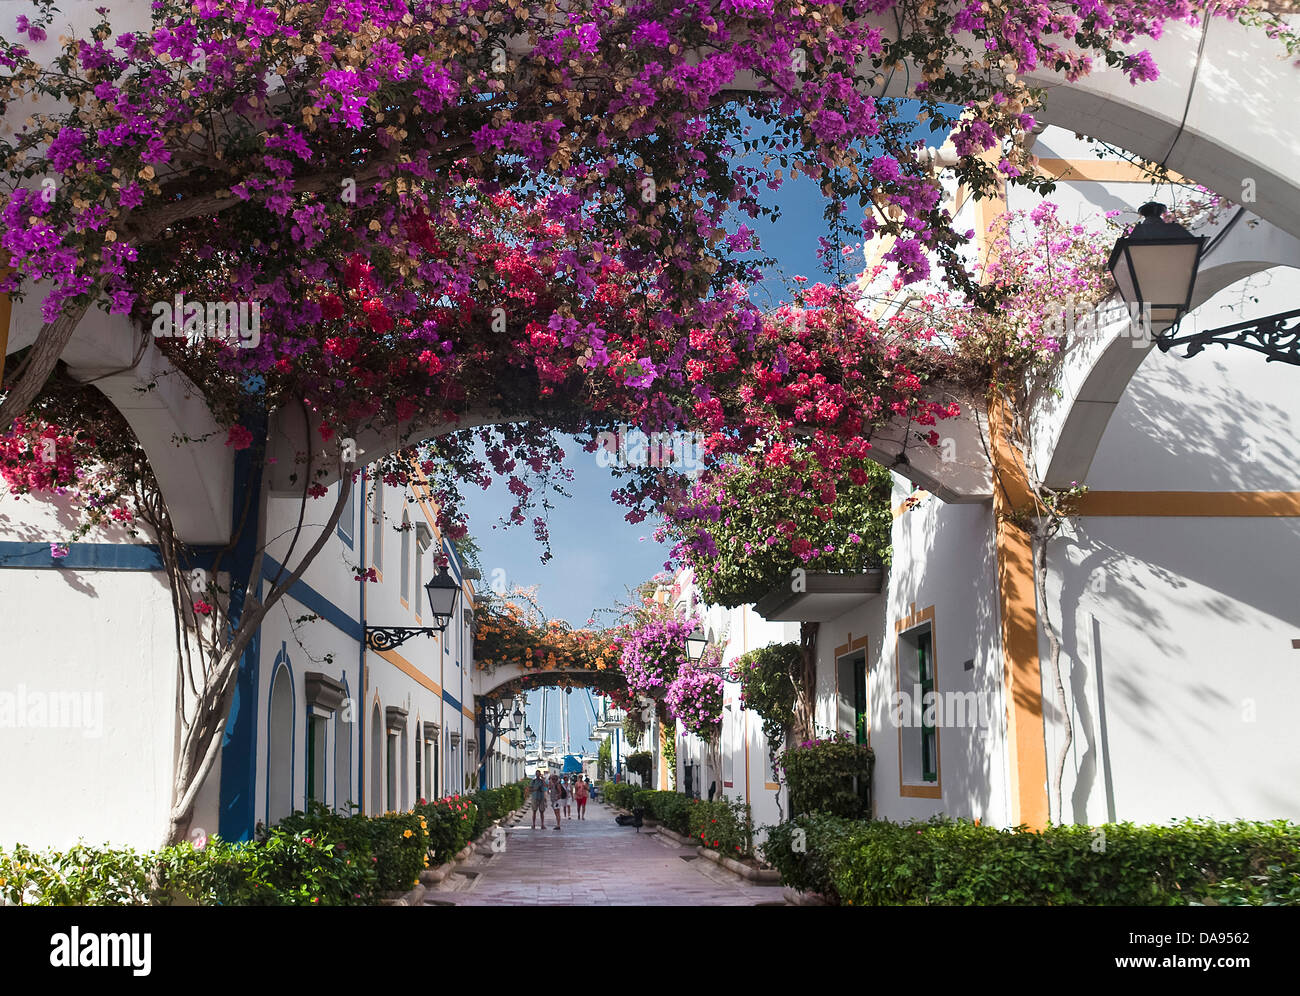 Bougainvillea, Spain, Europe, Canary Islands, Gran Canaria, Mogan, Puerto, arch, architecture, colourful, flowers, - Stock Image